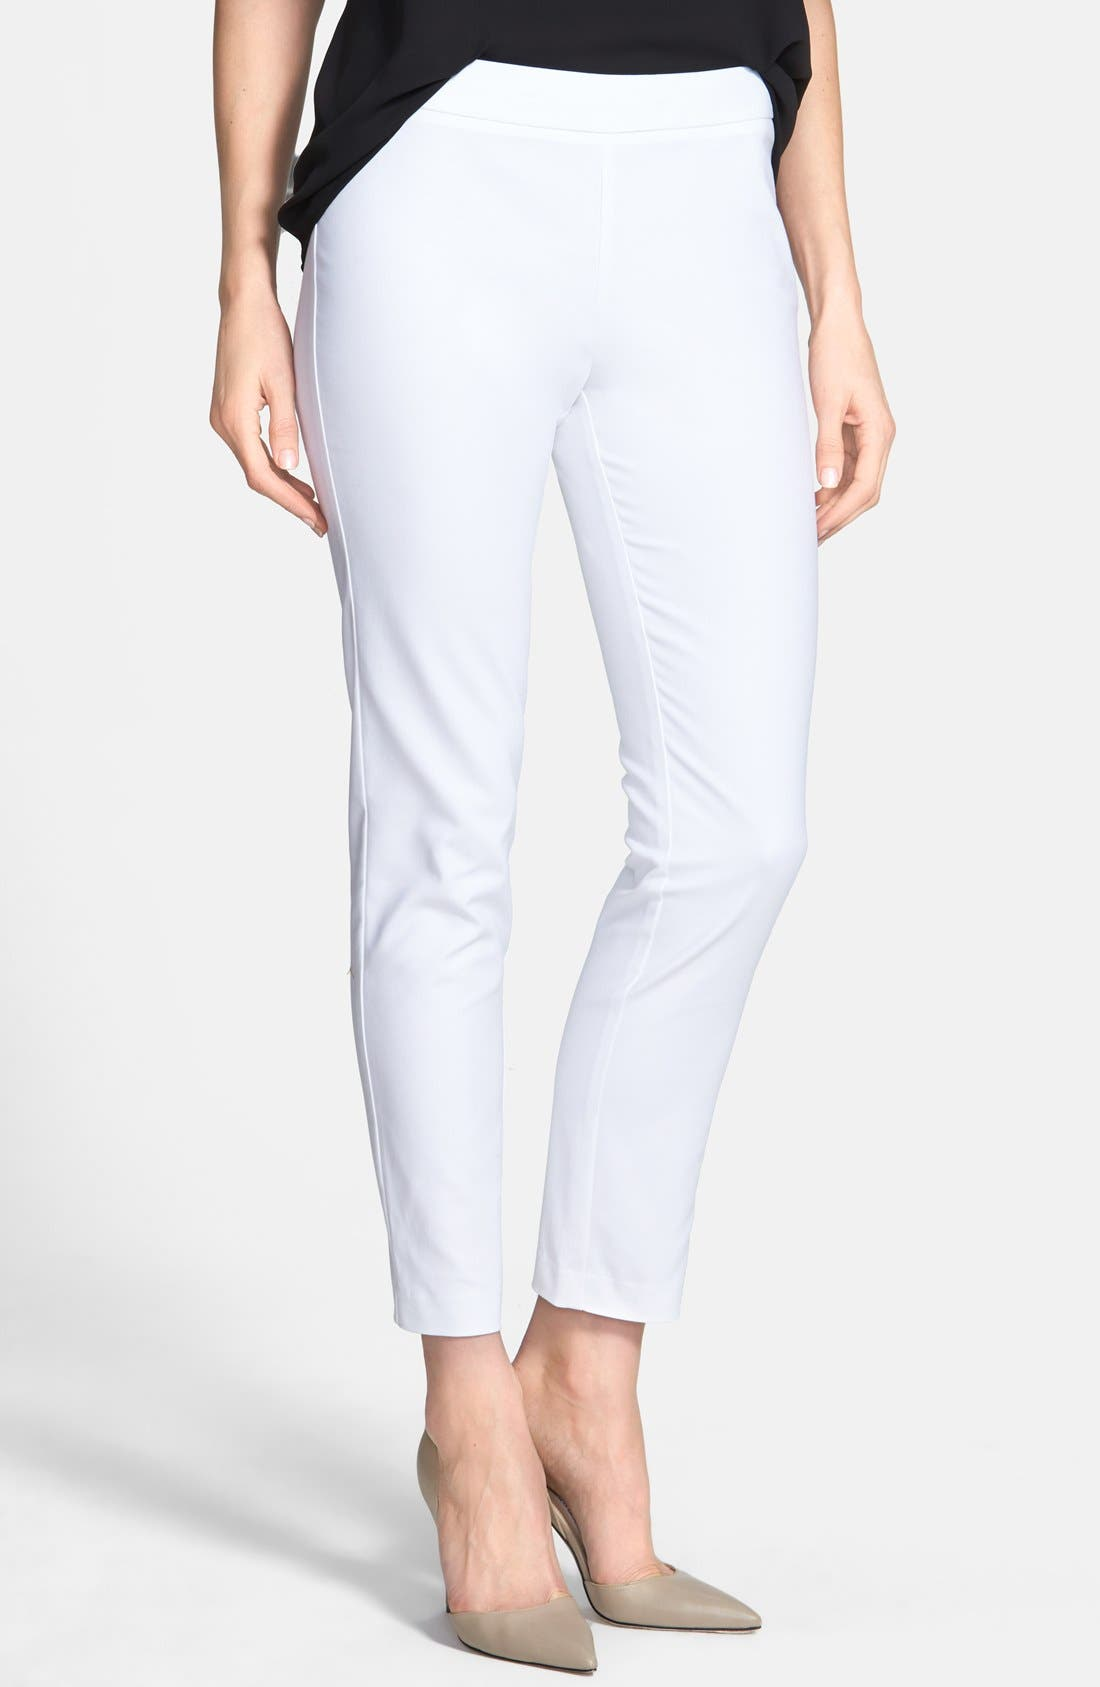 Main Image - Kenneth Cole New York 'Khloee' Slim Ankle Pants